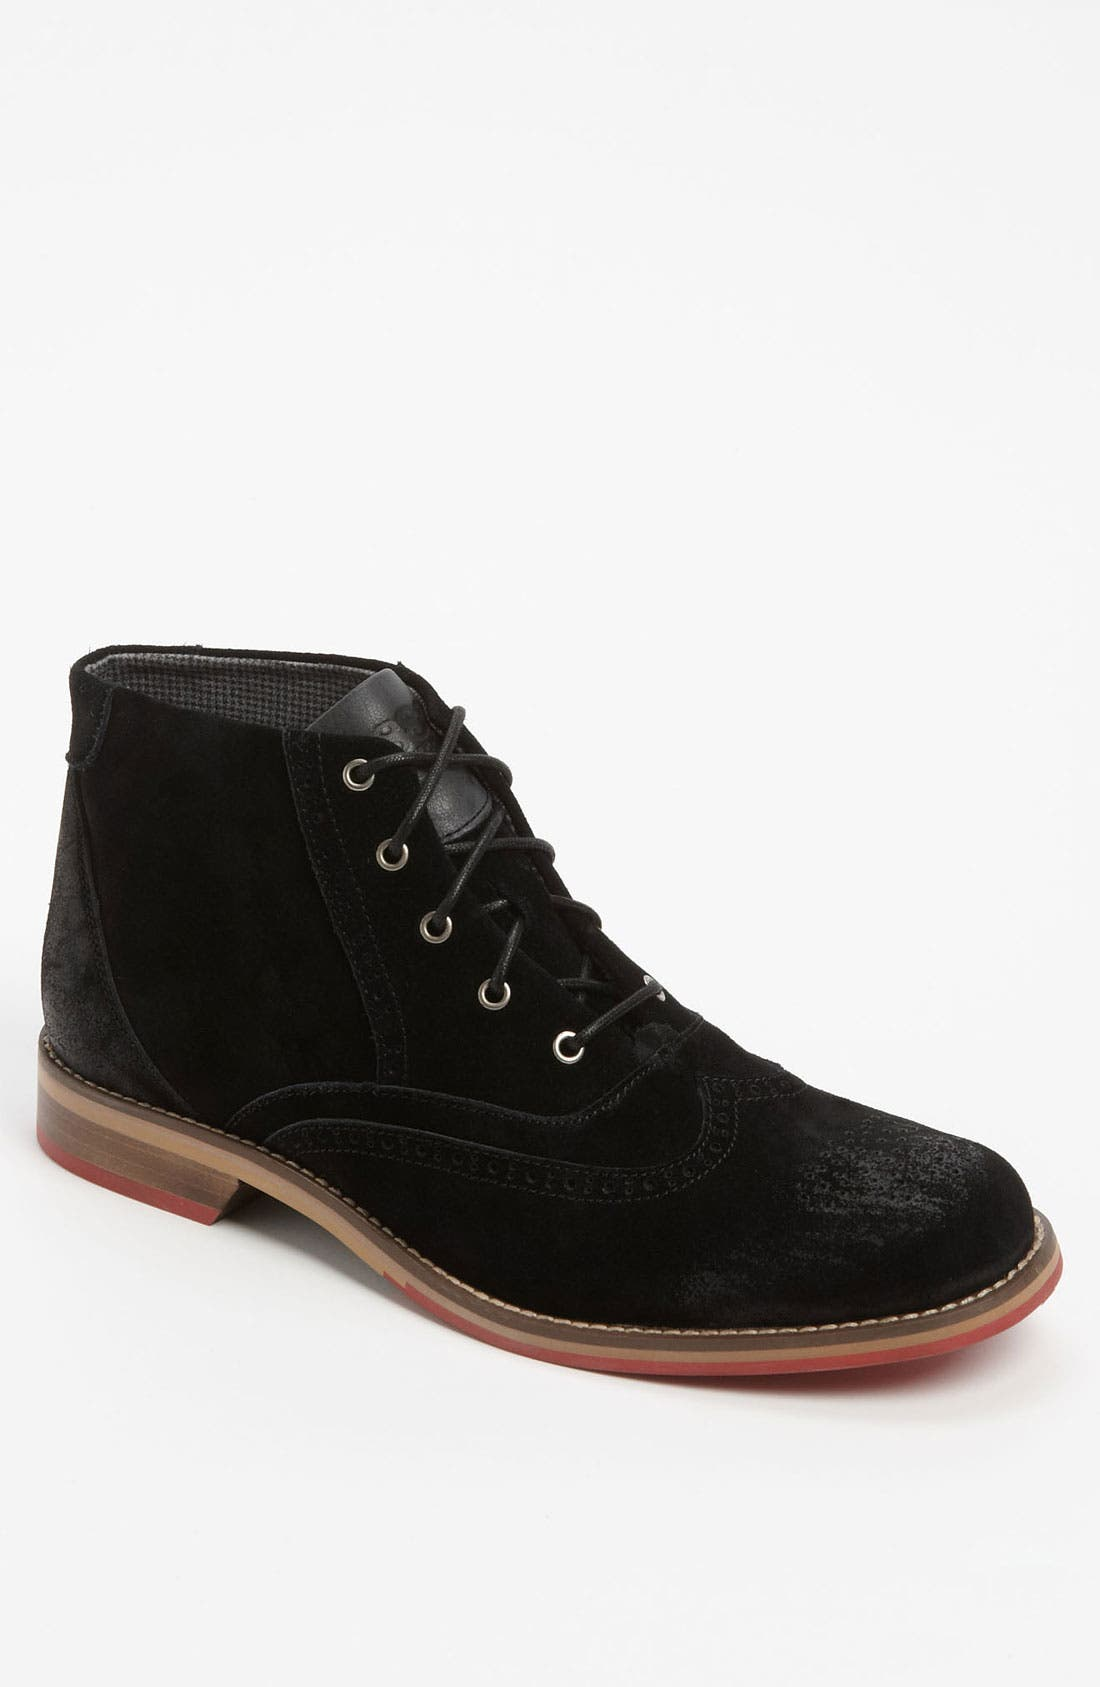 Alternate Image 1 Selected - Wolverine 'Paxton' Wingtip Chukka Boot (Online Only)